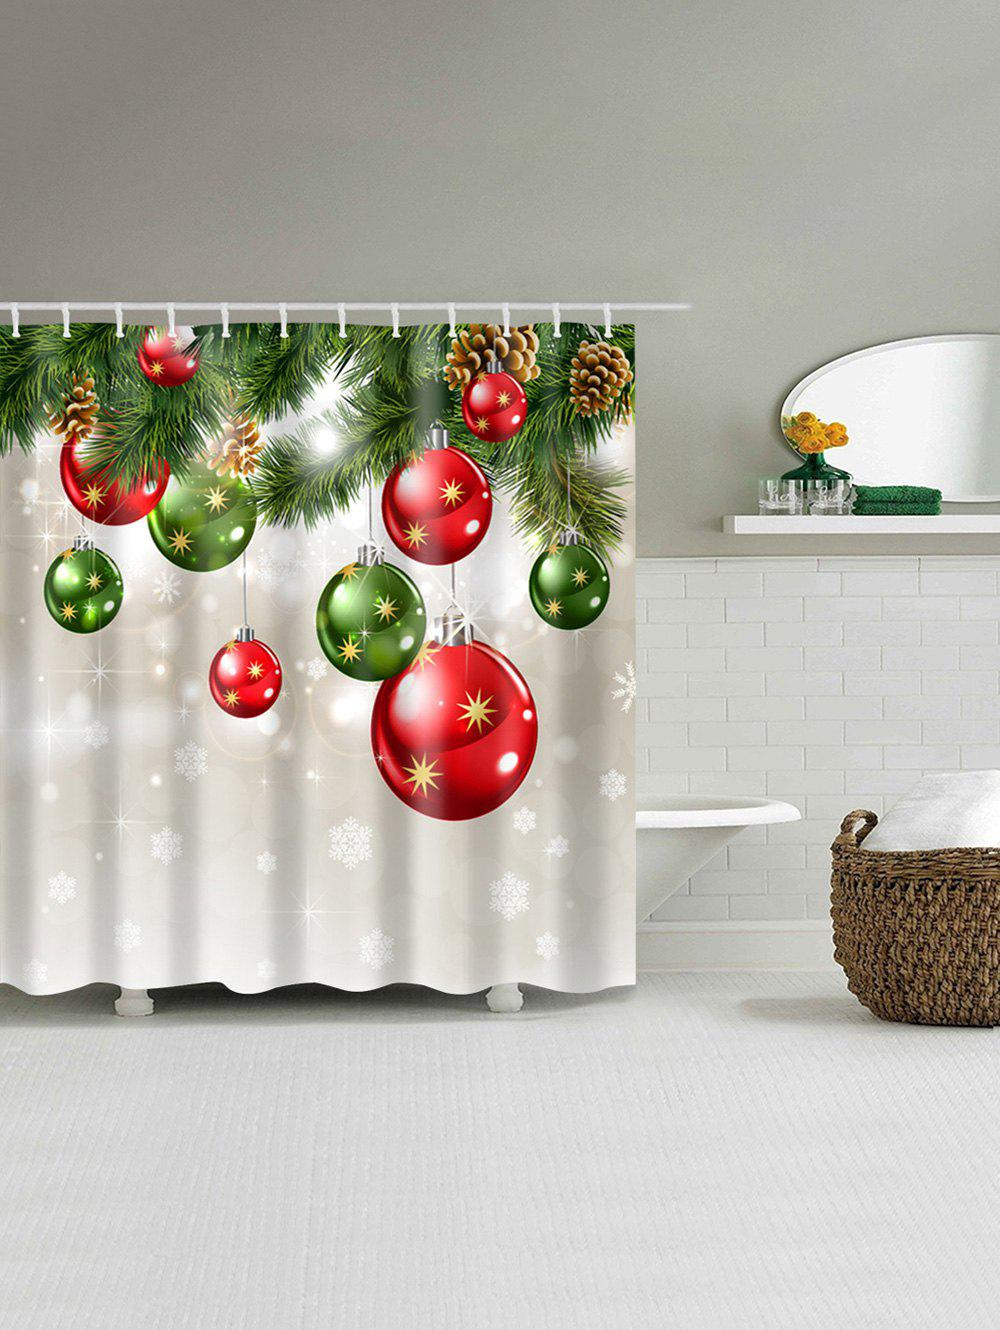 Christmas Baubles Tree Print Waterproof Fabric Shower Curtain - COLORMIX W71 INCH * L79 INCH